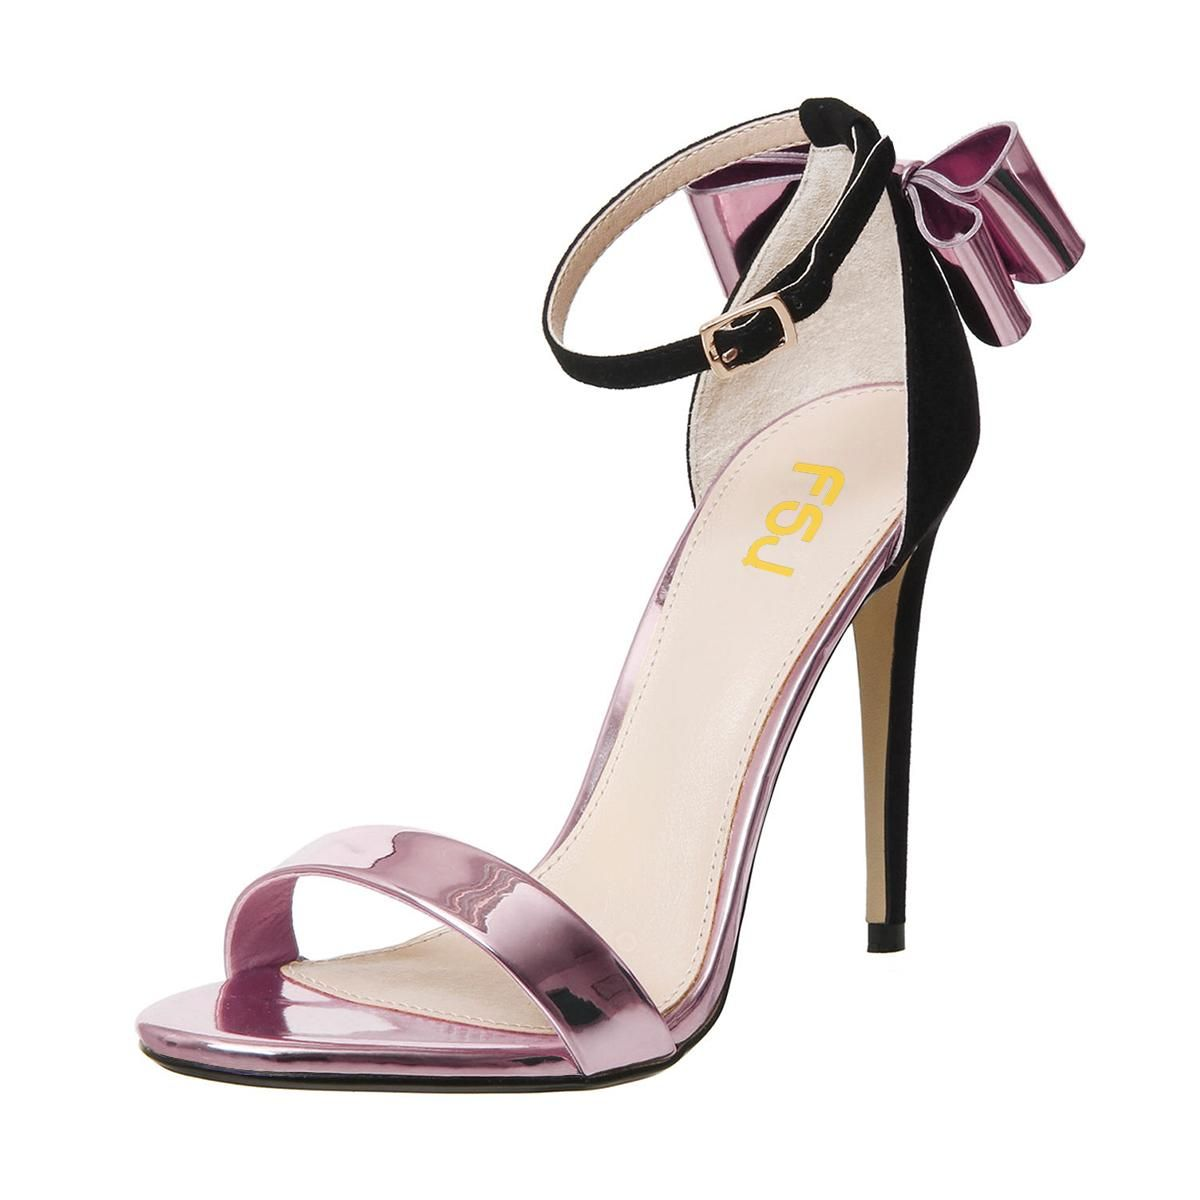 c6d81687bade  FSJshoes -  FSJ Shoes Rose Gold Shoes Ankle Strap Sandals with Bow -  AdoreWe